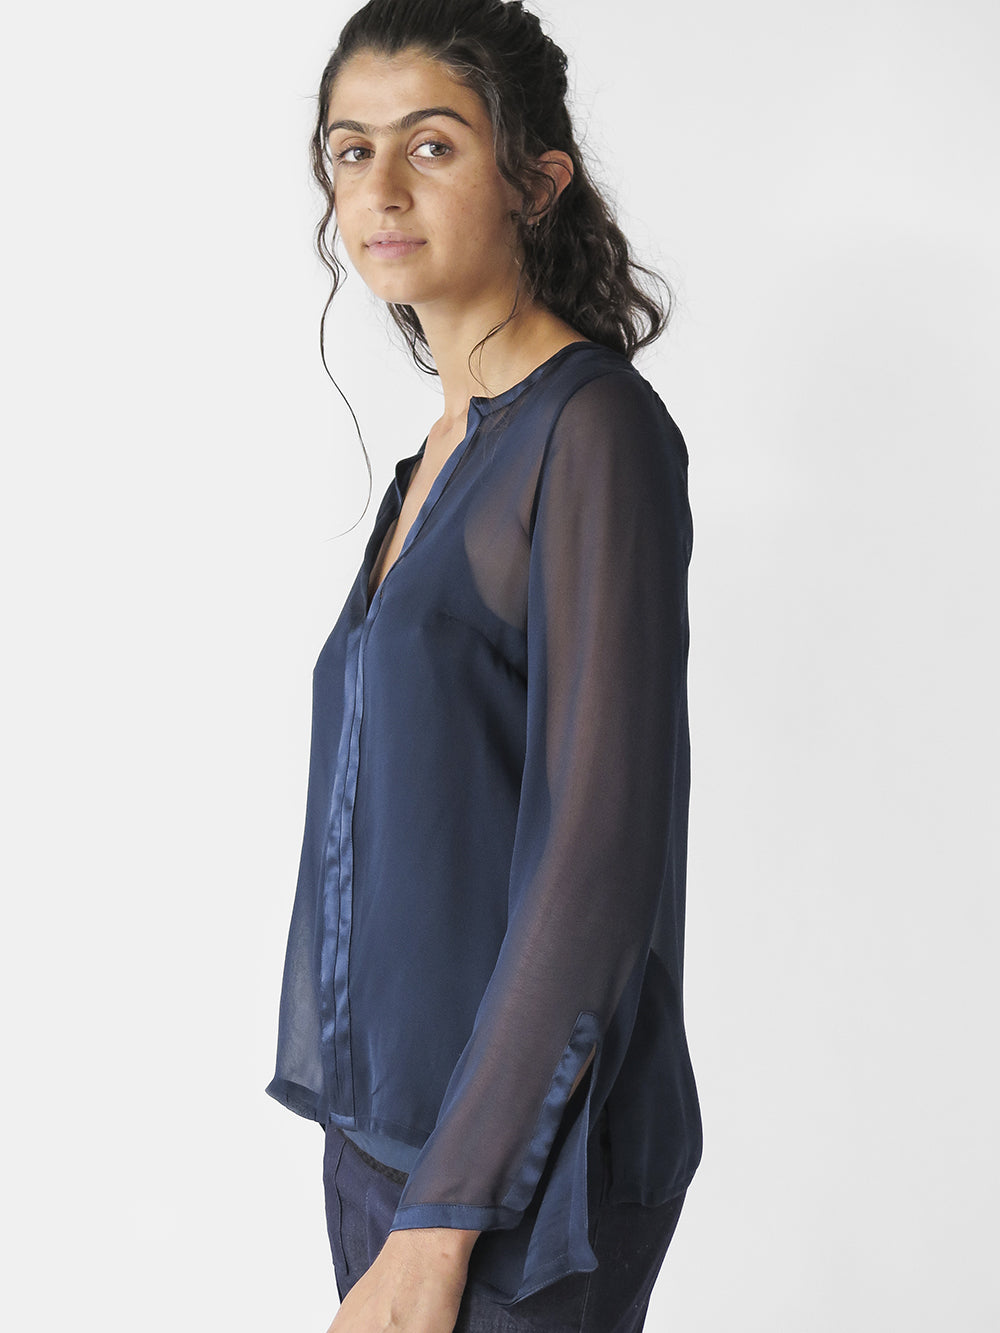 silk chiffon long sleeve Diego blouse with v-neck & charmeuse trim; has slits at sleeves and sideseam.